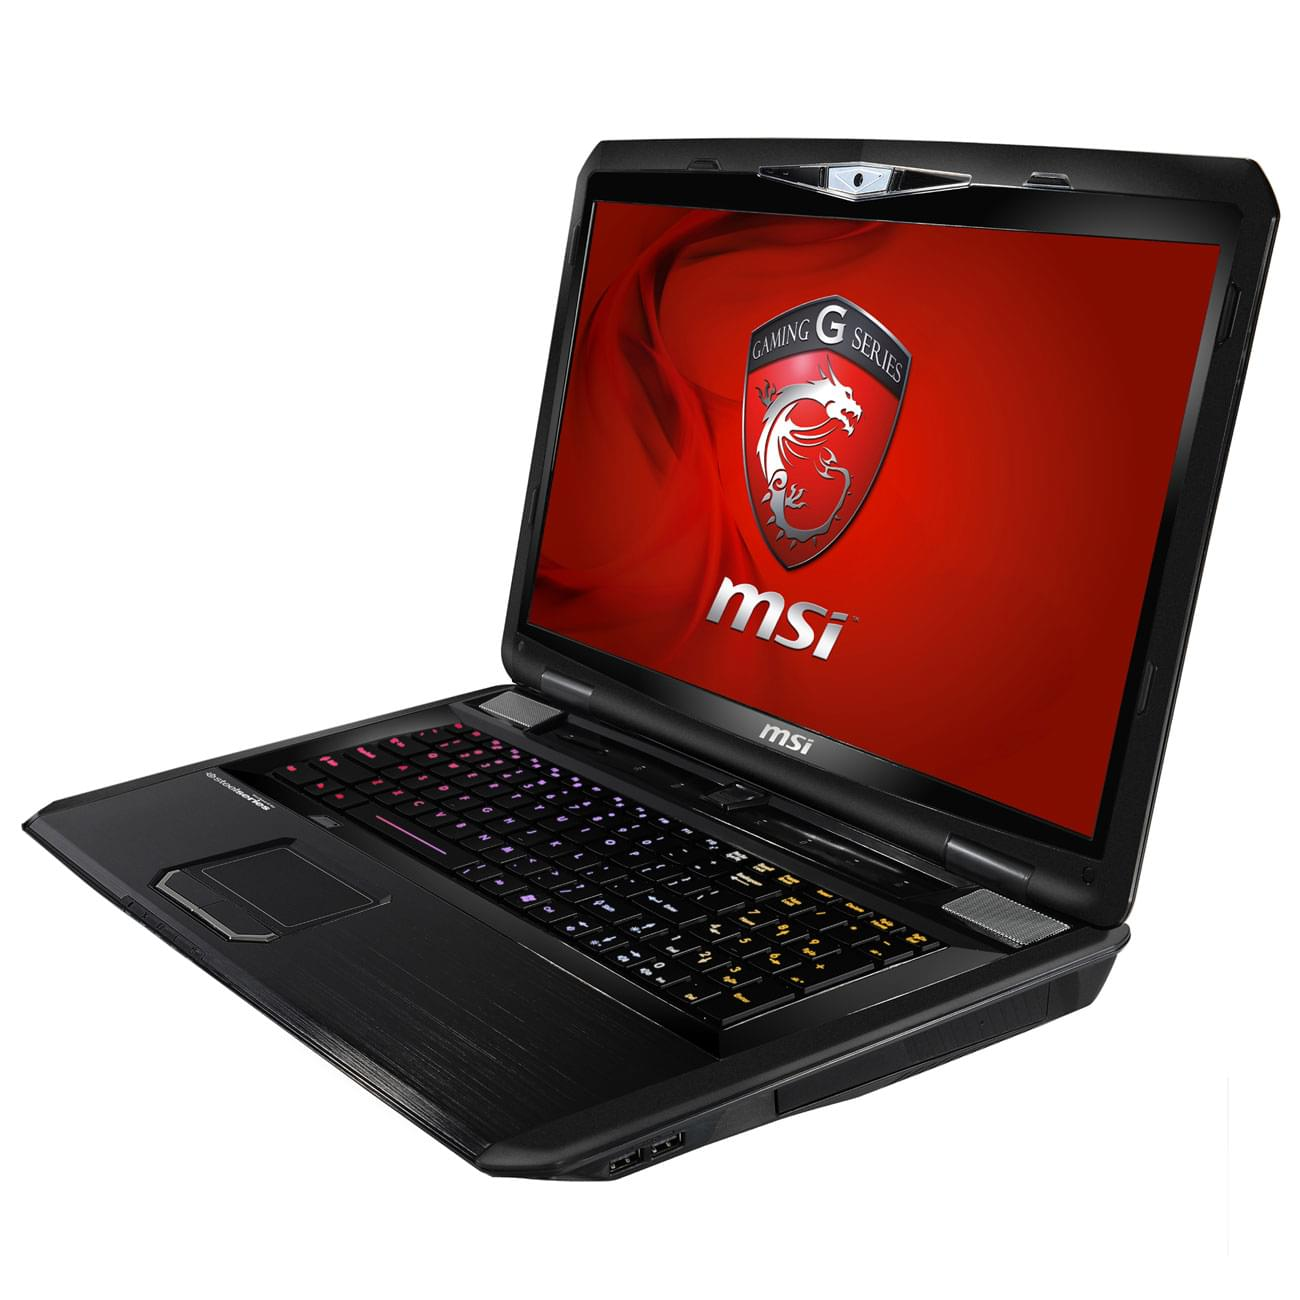 MSI 9S7-176212-014 - PC portable MSI - Cybertek.fr - 0